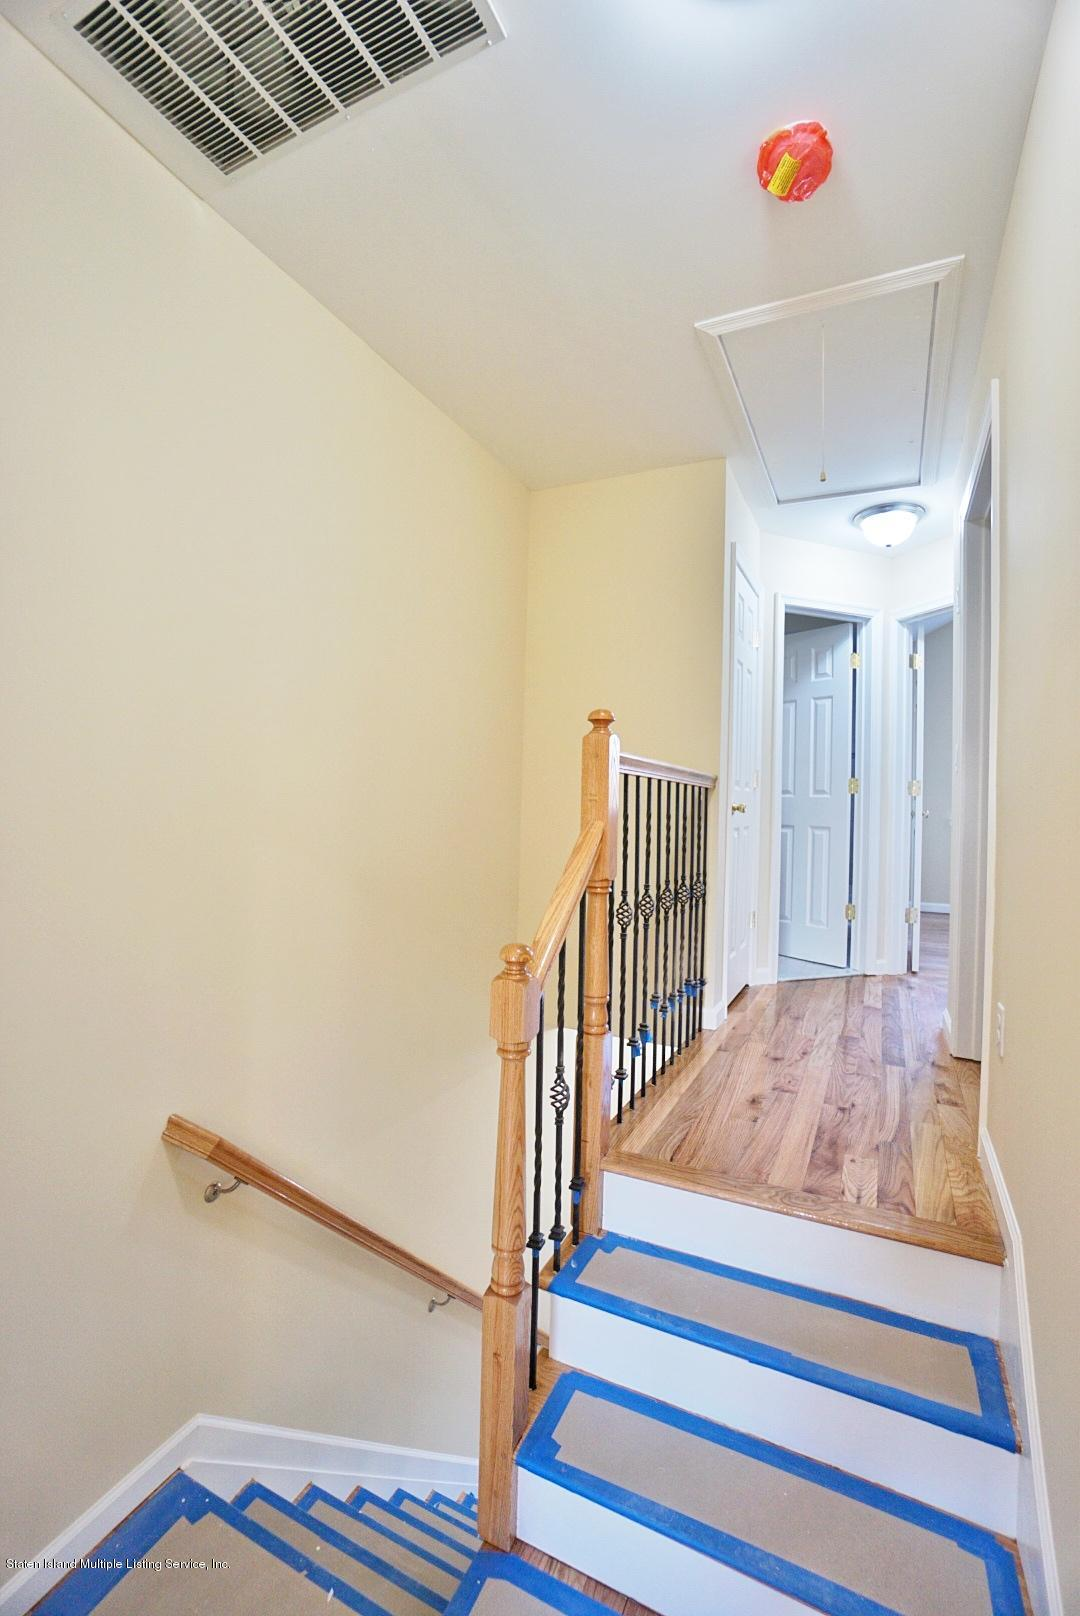 Single Family - Attached 34 Bamberger Lane  Staten Island, NY 10312, MLS-1135521-20